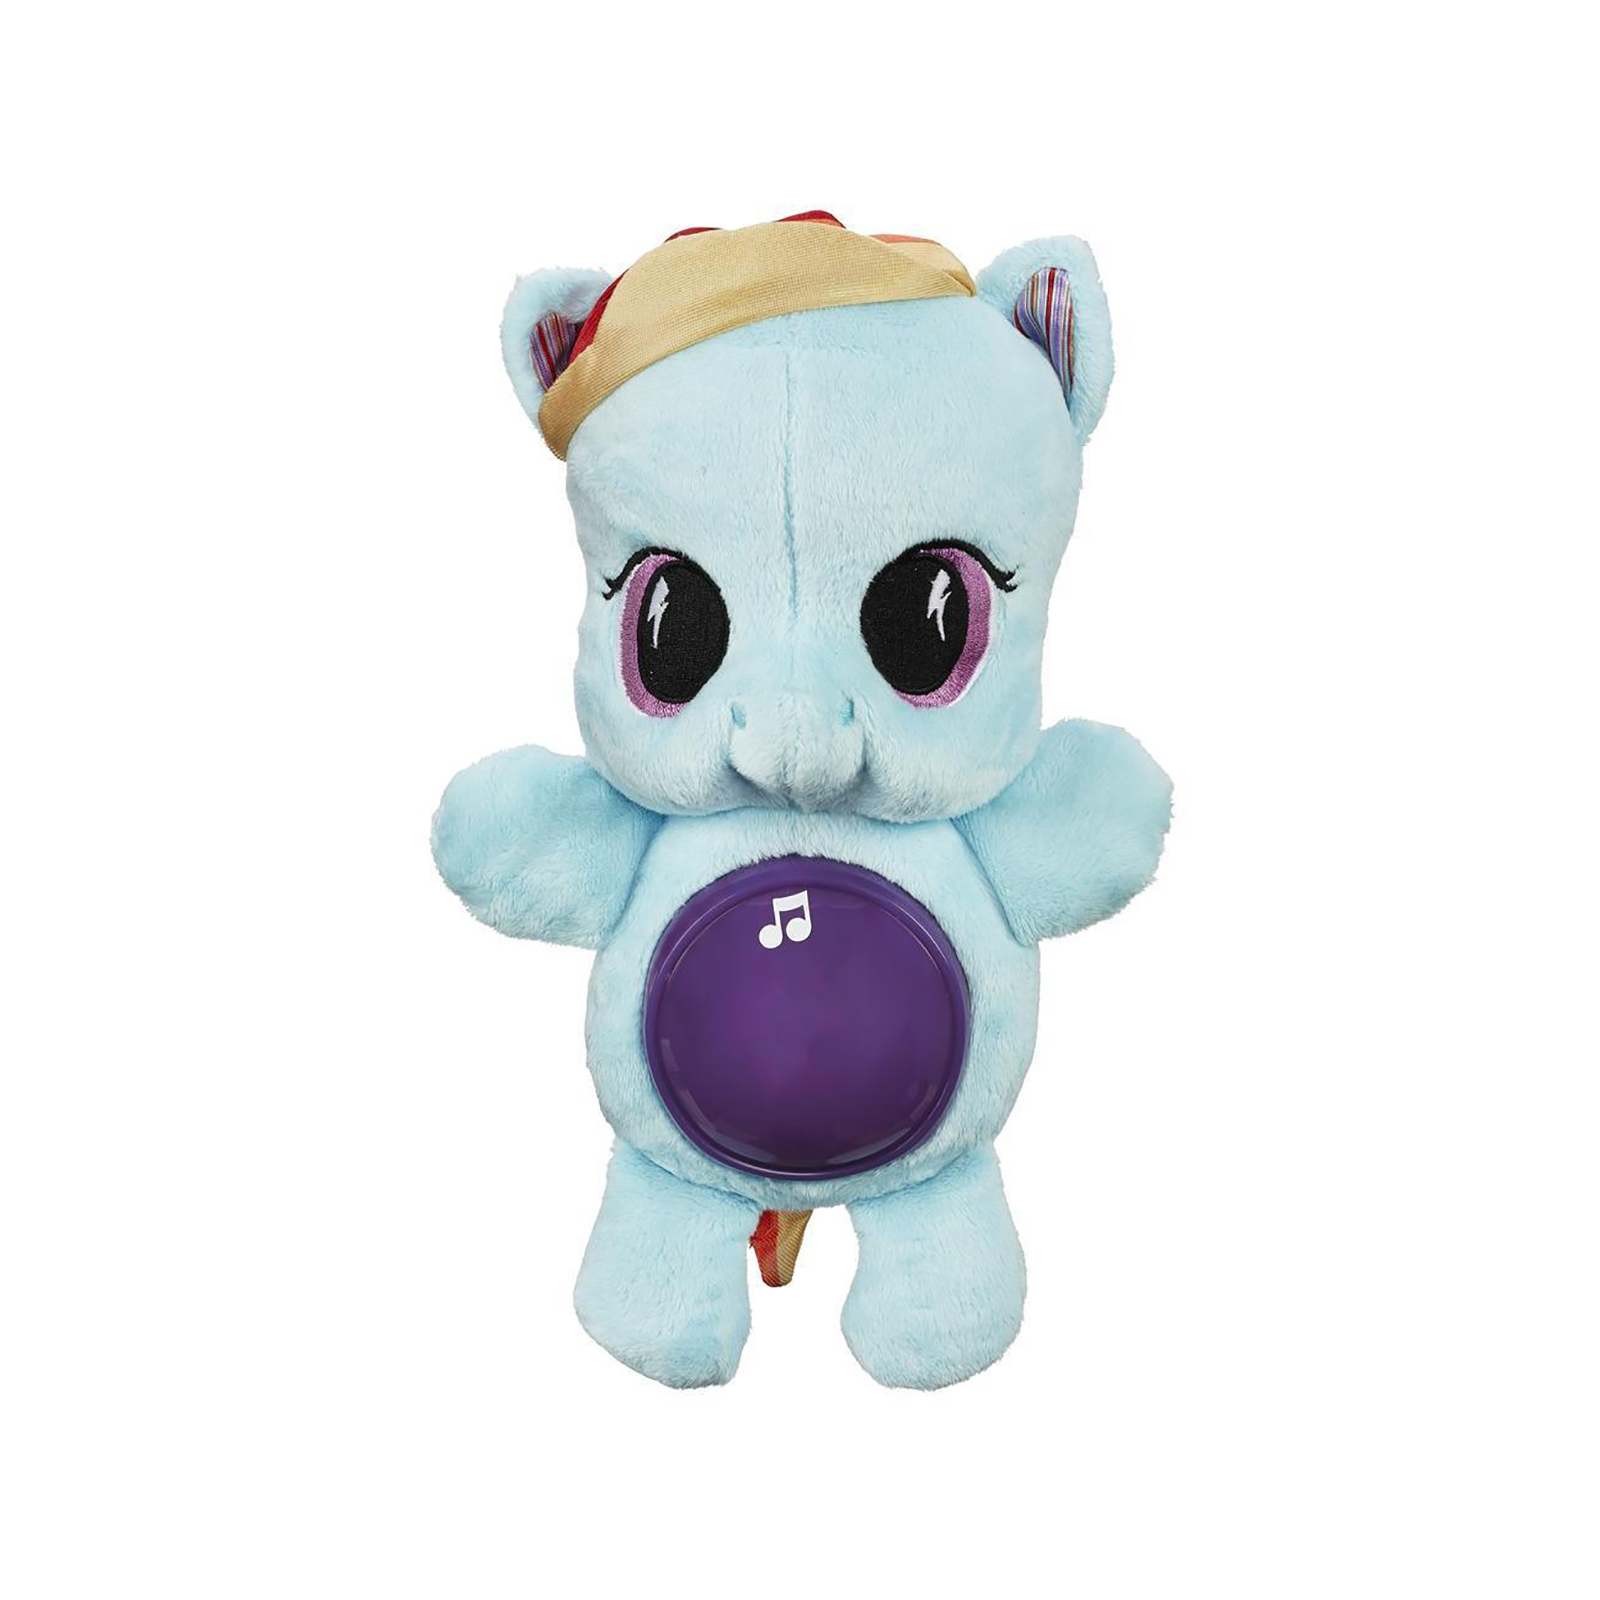 Glow Toys For Bedtime My Little Pony Rainbow Dash Bedtime Nightlight Glow Toy